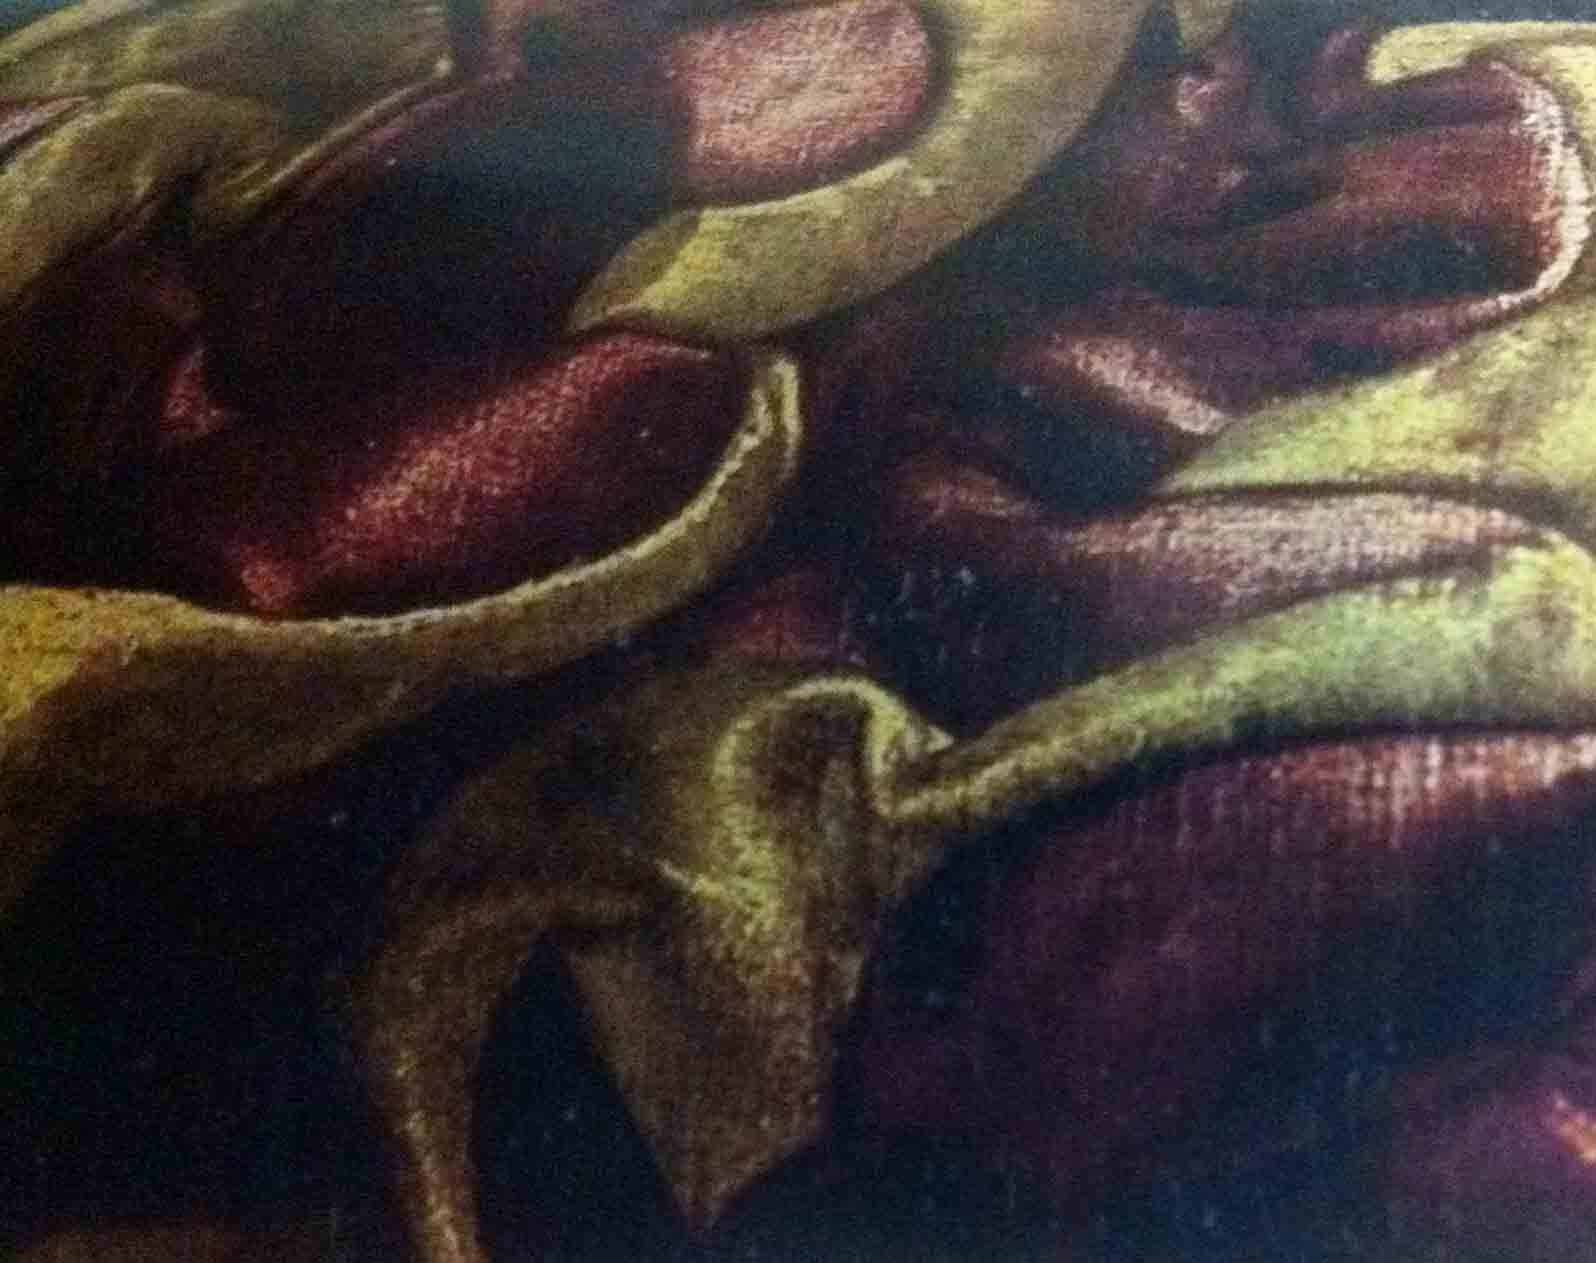 Renaissance Fabric detail